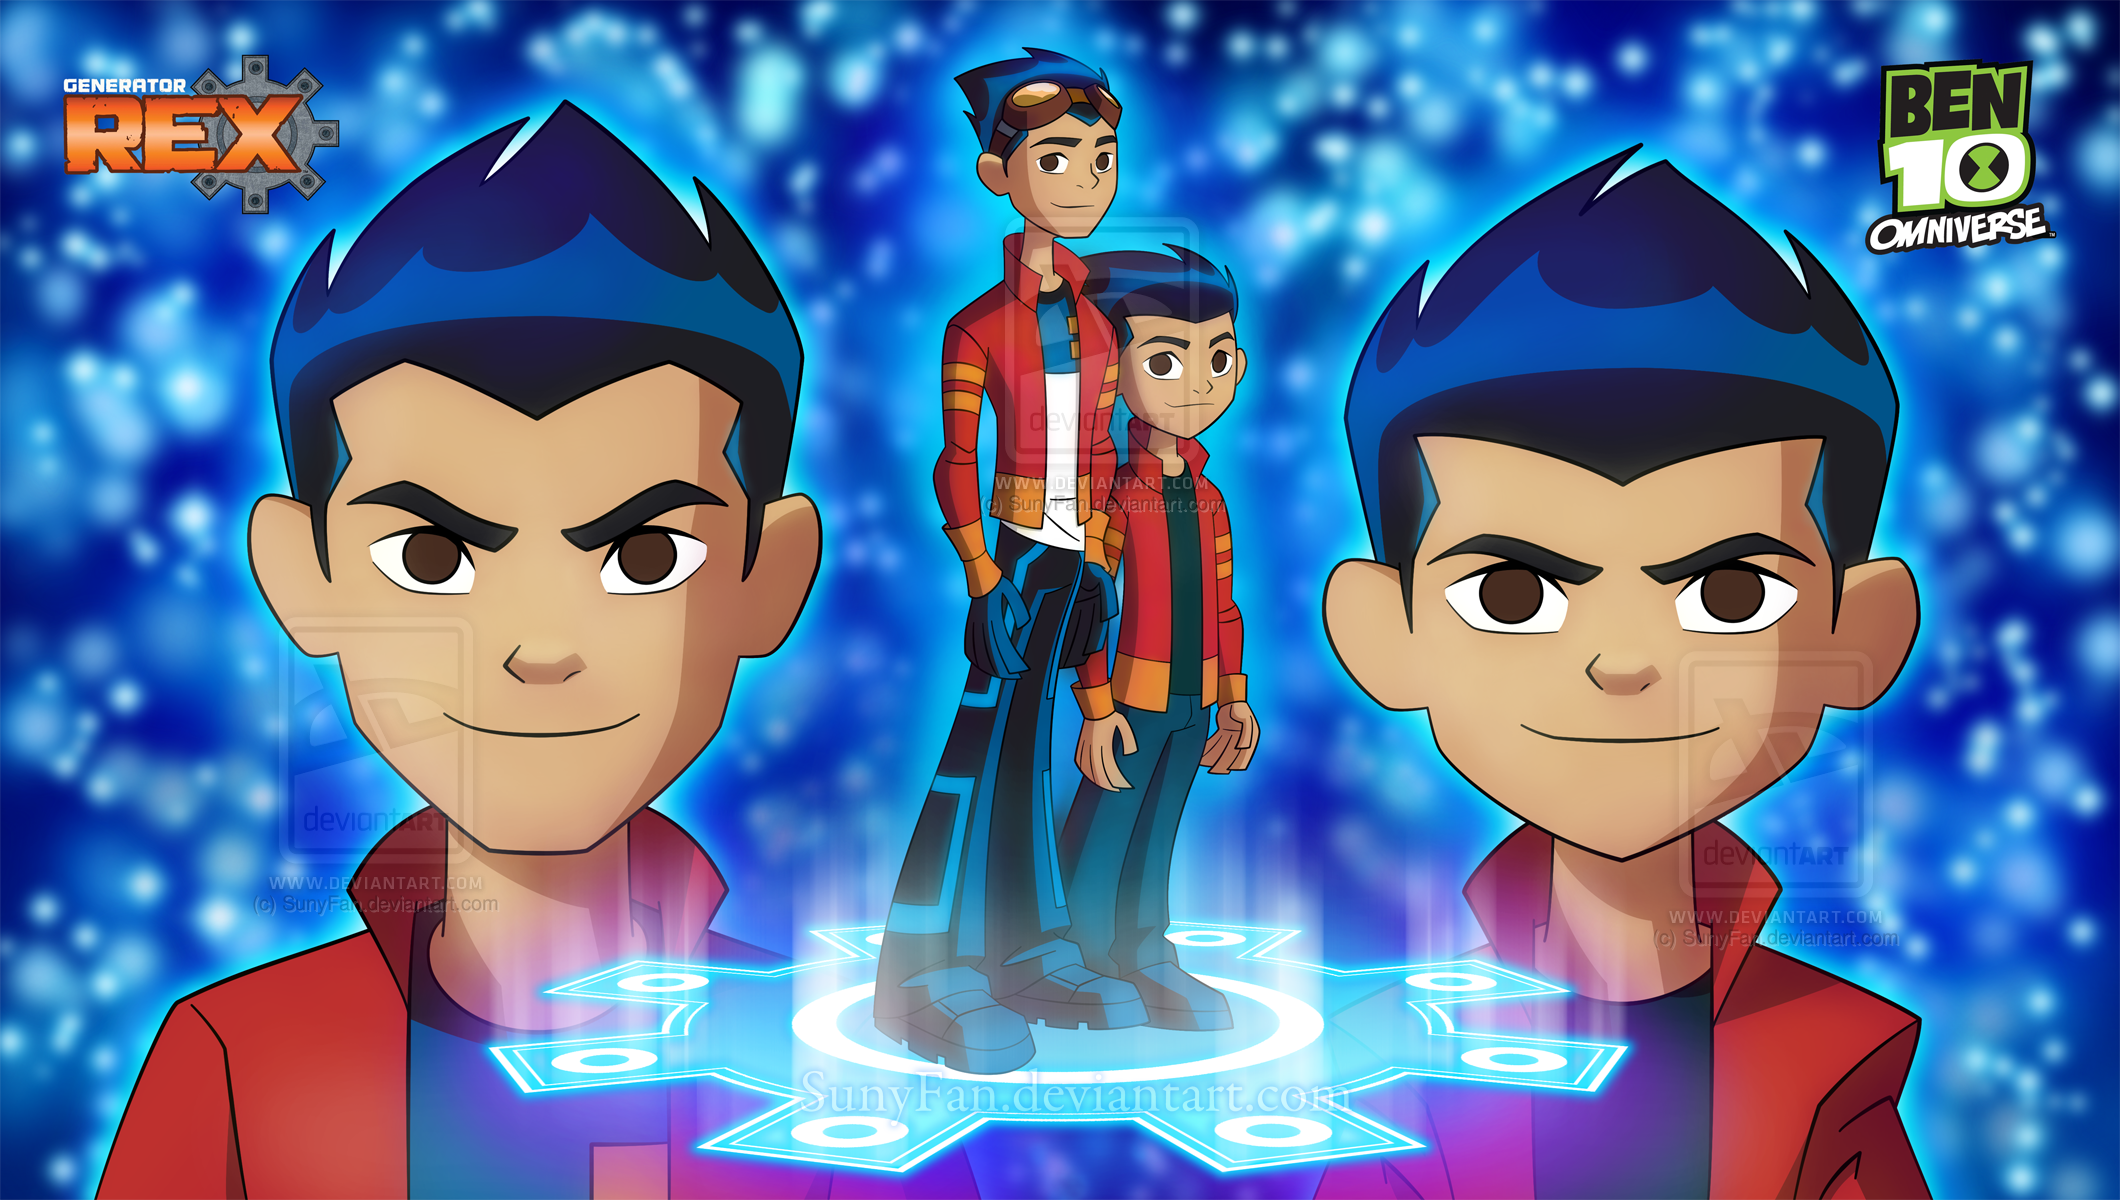 Grown and Little Rex Salazar - Omniverse Style by SunyFan